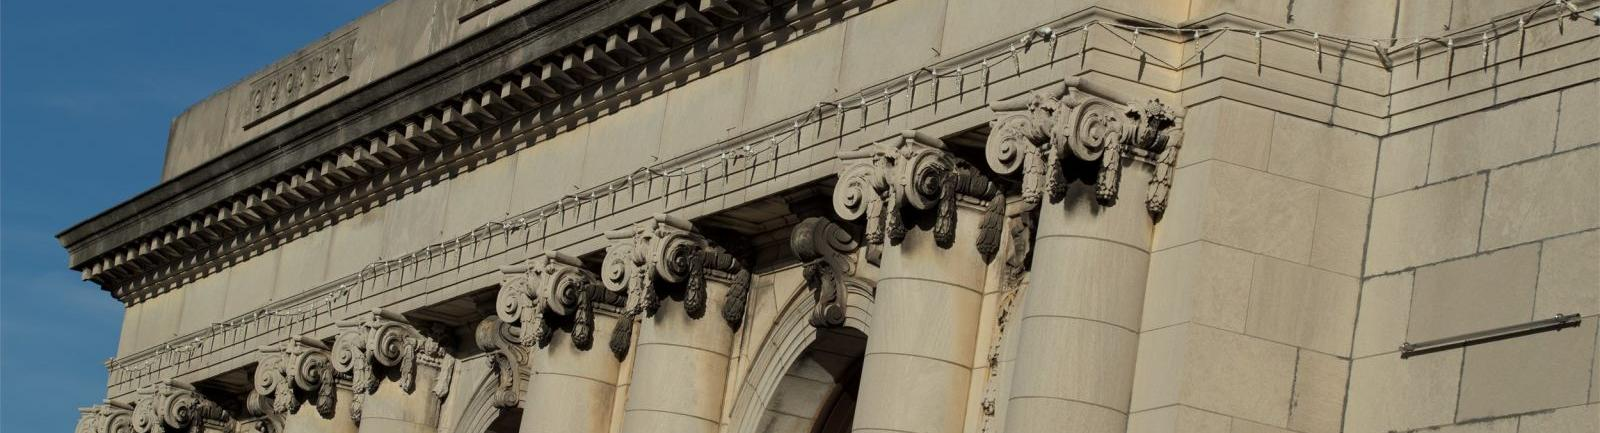 top of a building with columns